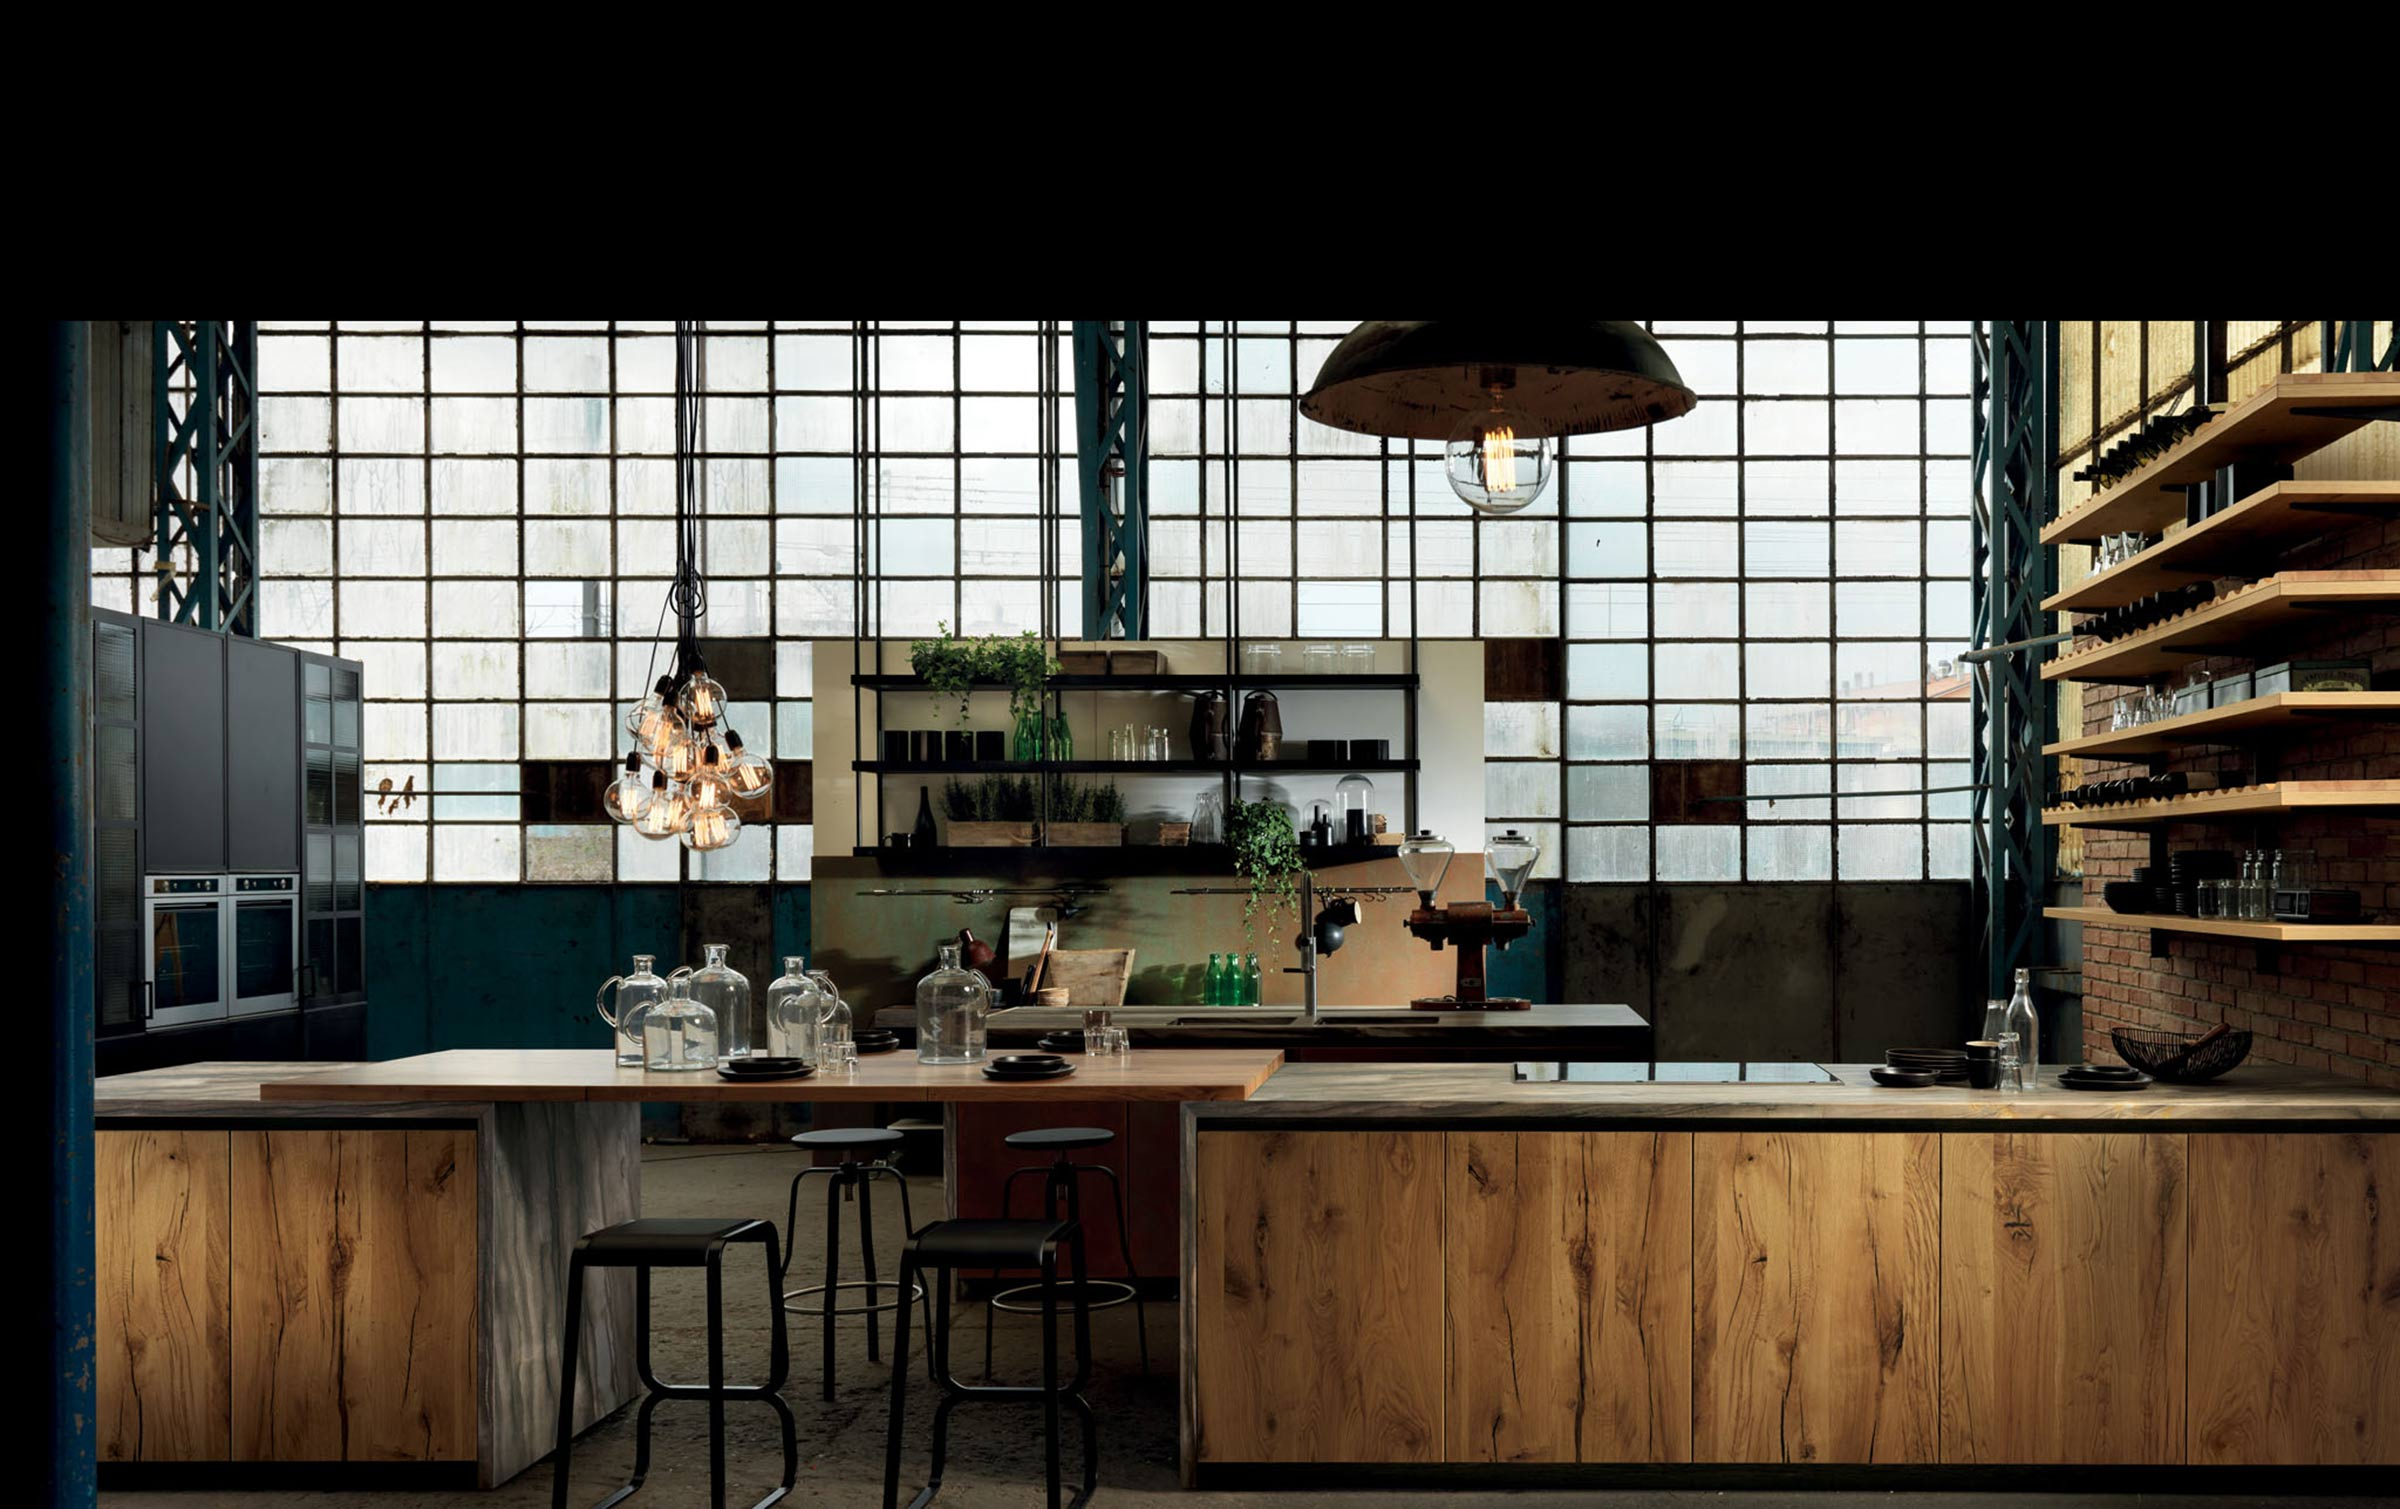 cuisine style atelier industriel. Black Bedroom Furniture Sets. Home Design Ideas